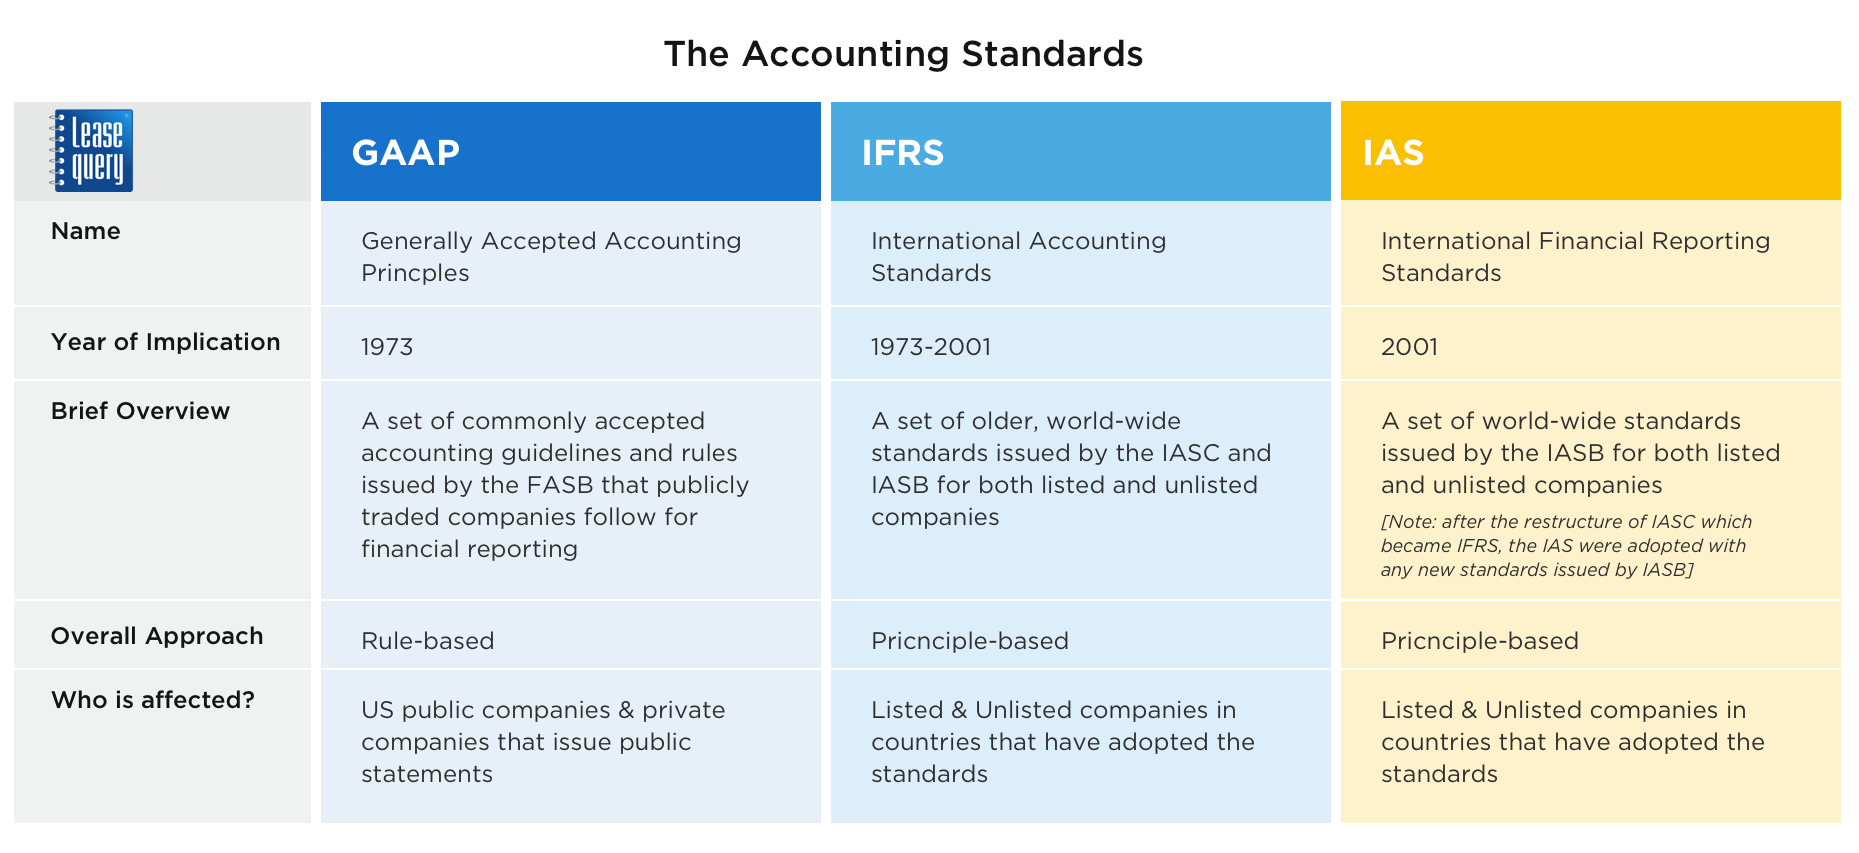 Lease Accounting Standards Explained